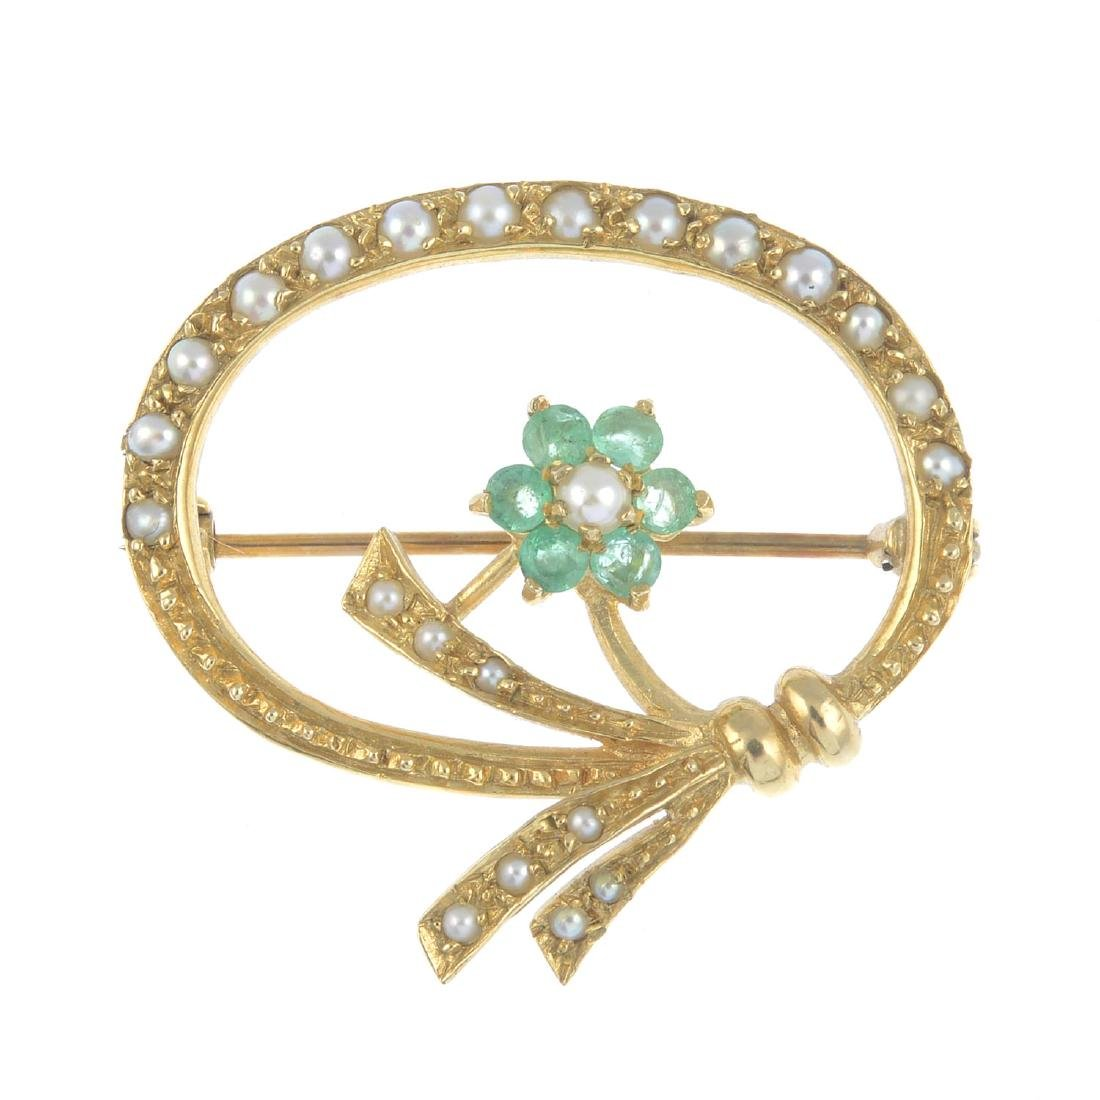 A 9ct gold emerald and split pearl brooch. Of openwork